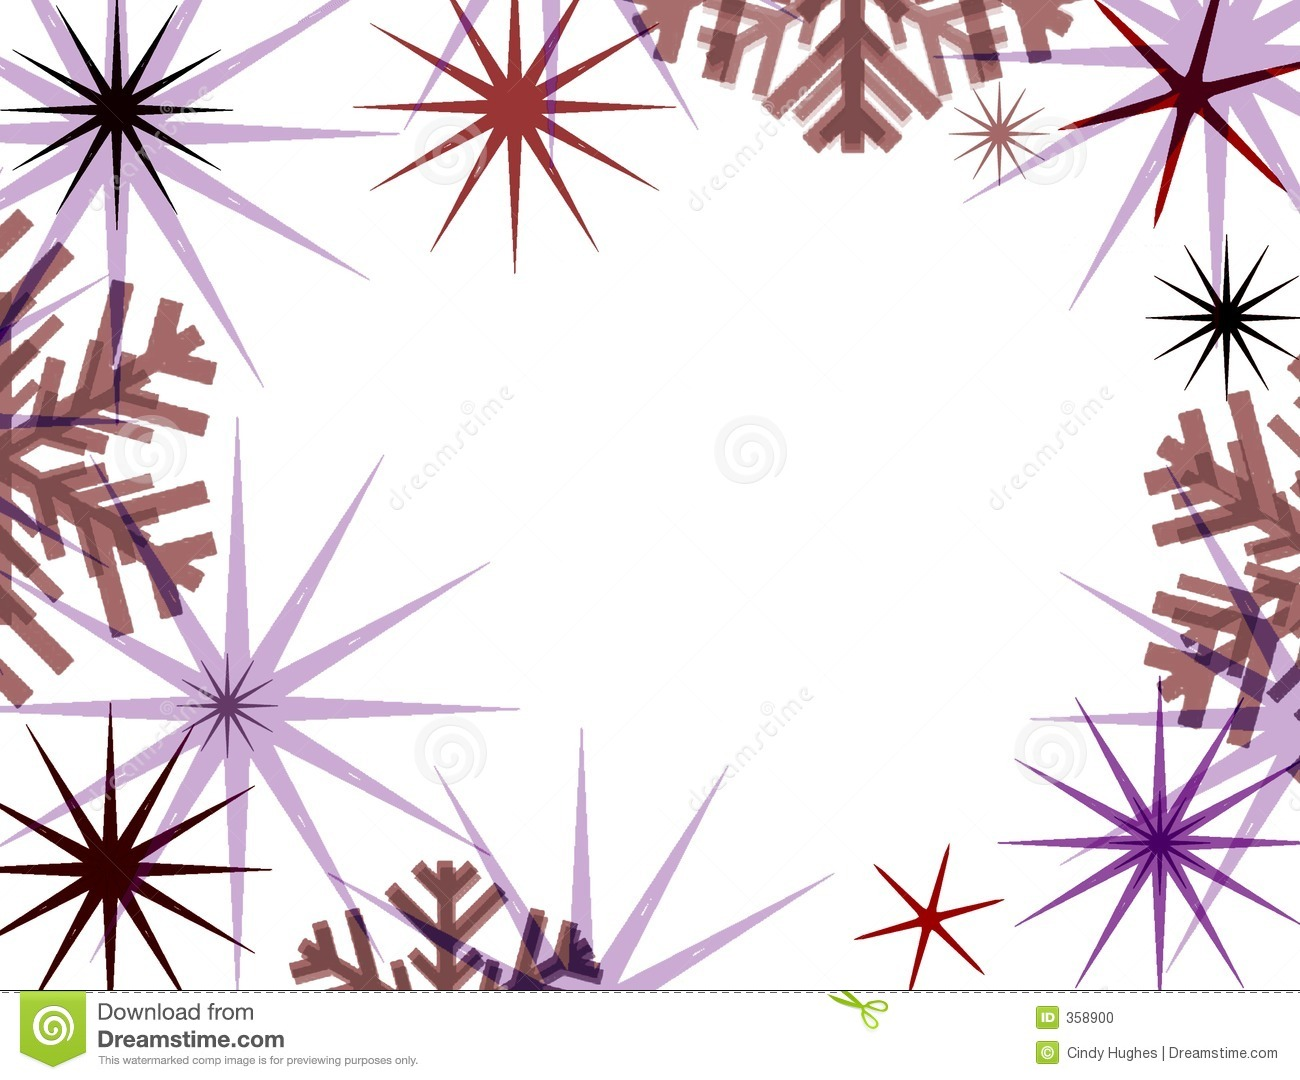 Star and snowflake border. | Clipart Panda - Free Clipart Images